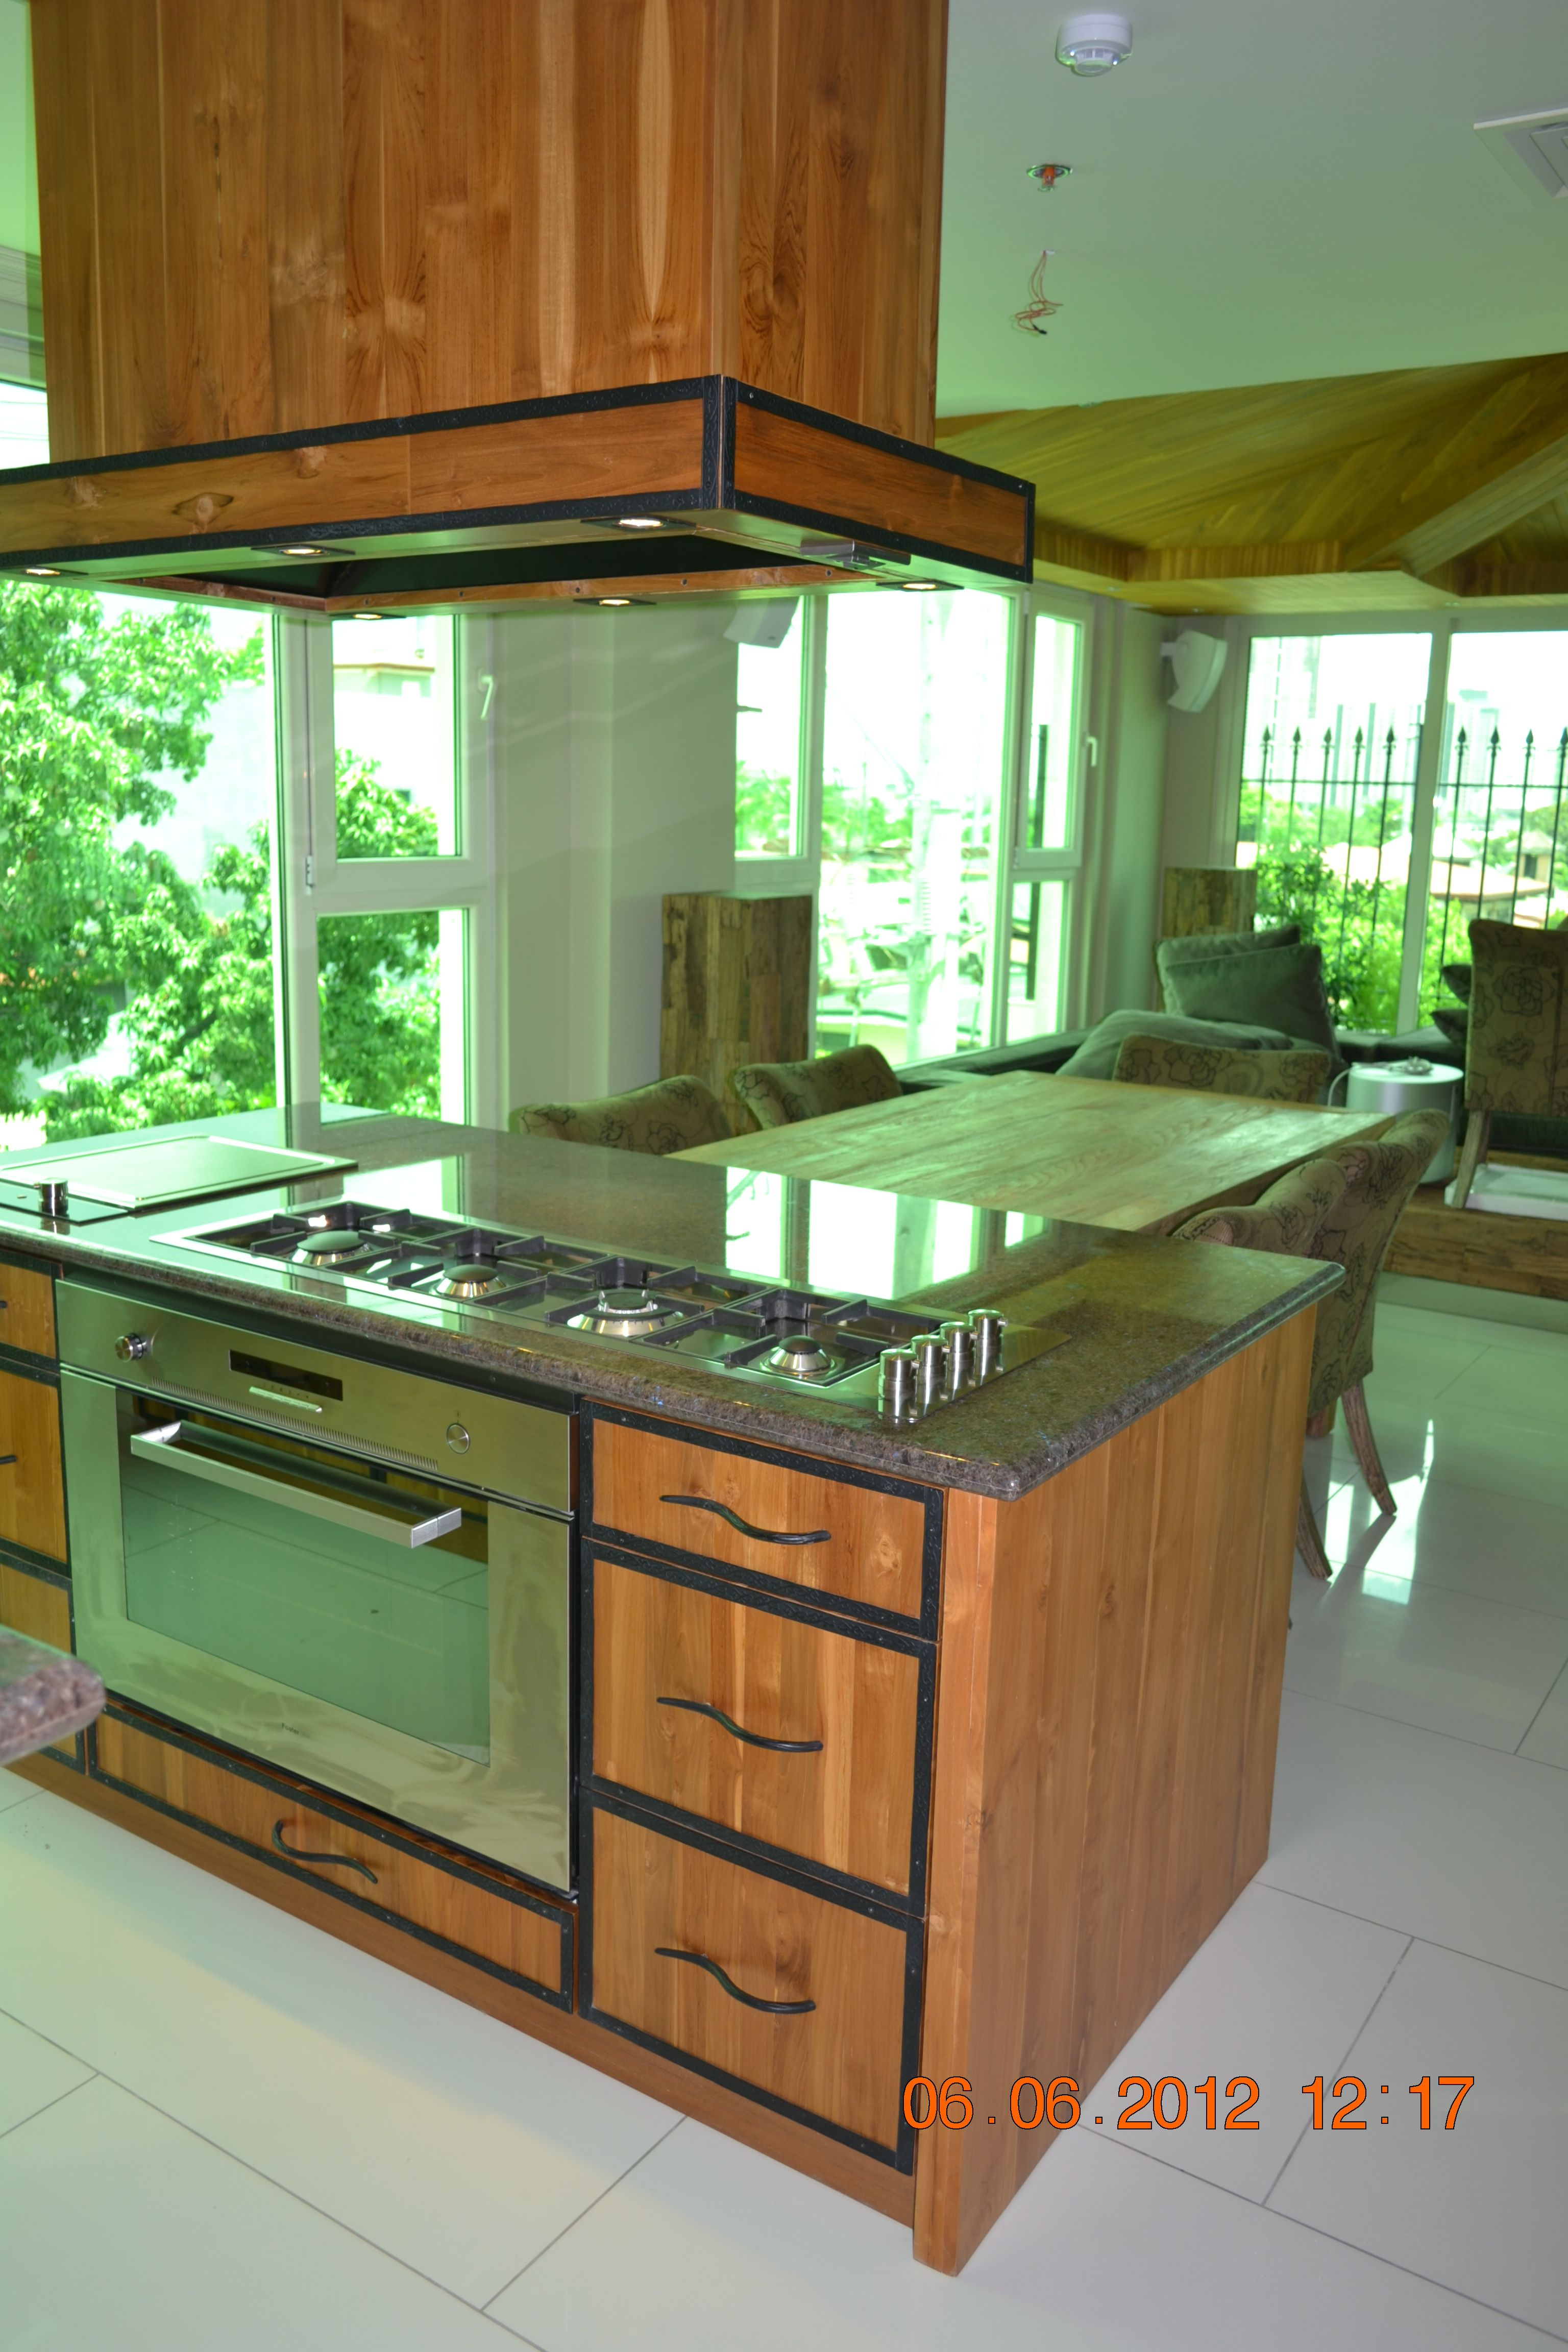 Island Kitchen Cabinets with Hood Built in oven and Hob Natural